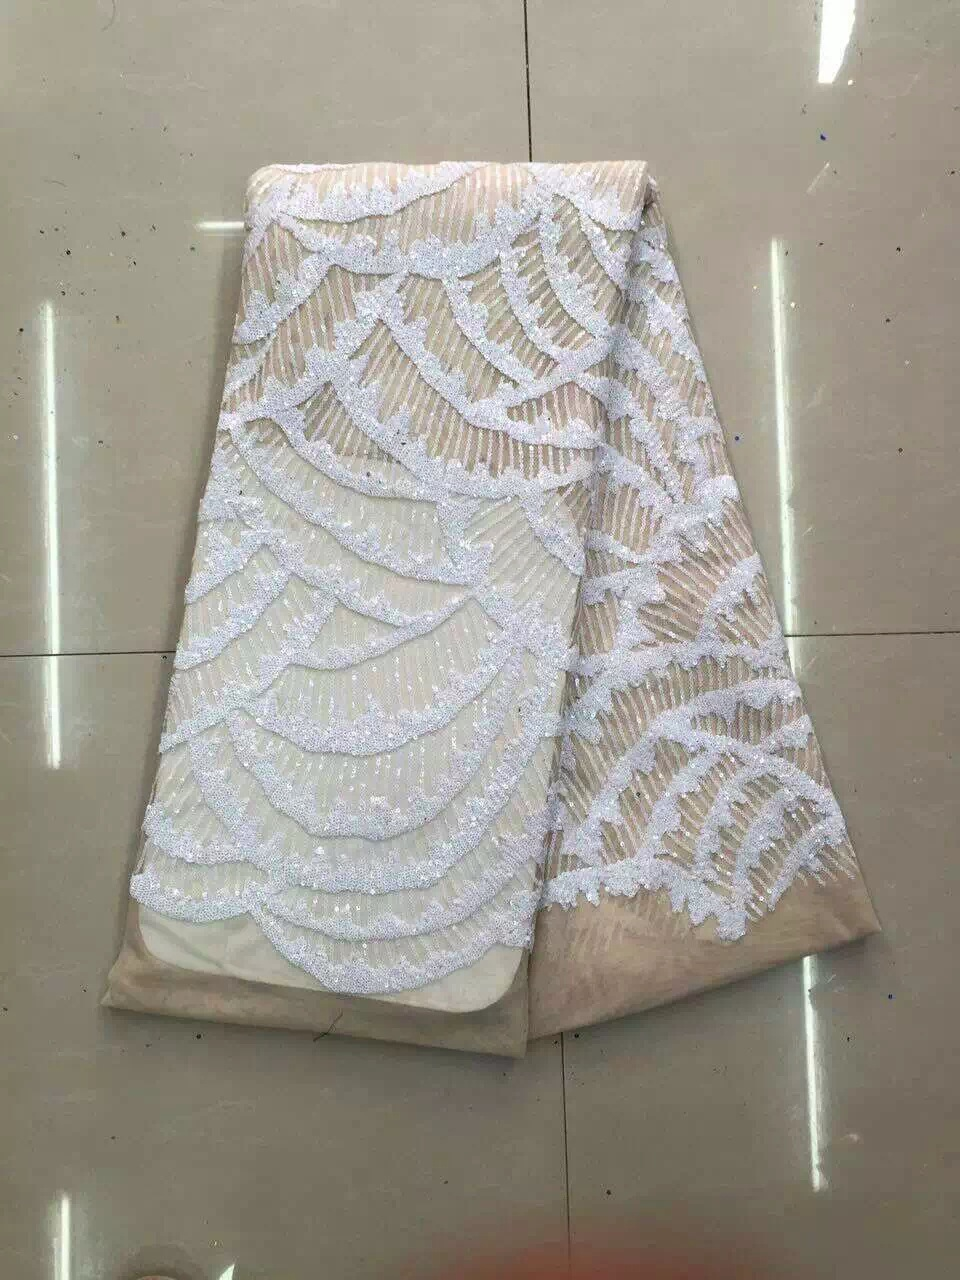 Royal Blue French African Lace Fabric Guipure Sequined Beaded Cotton Cord Tulle Nigerian Tissu Mesh India Lace For Wedding Dress